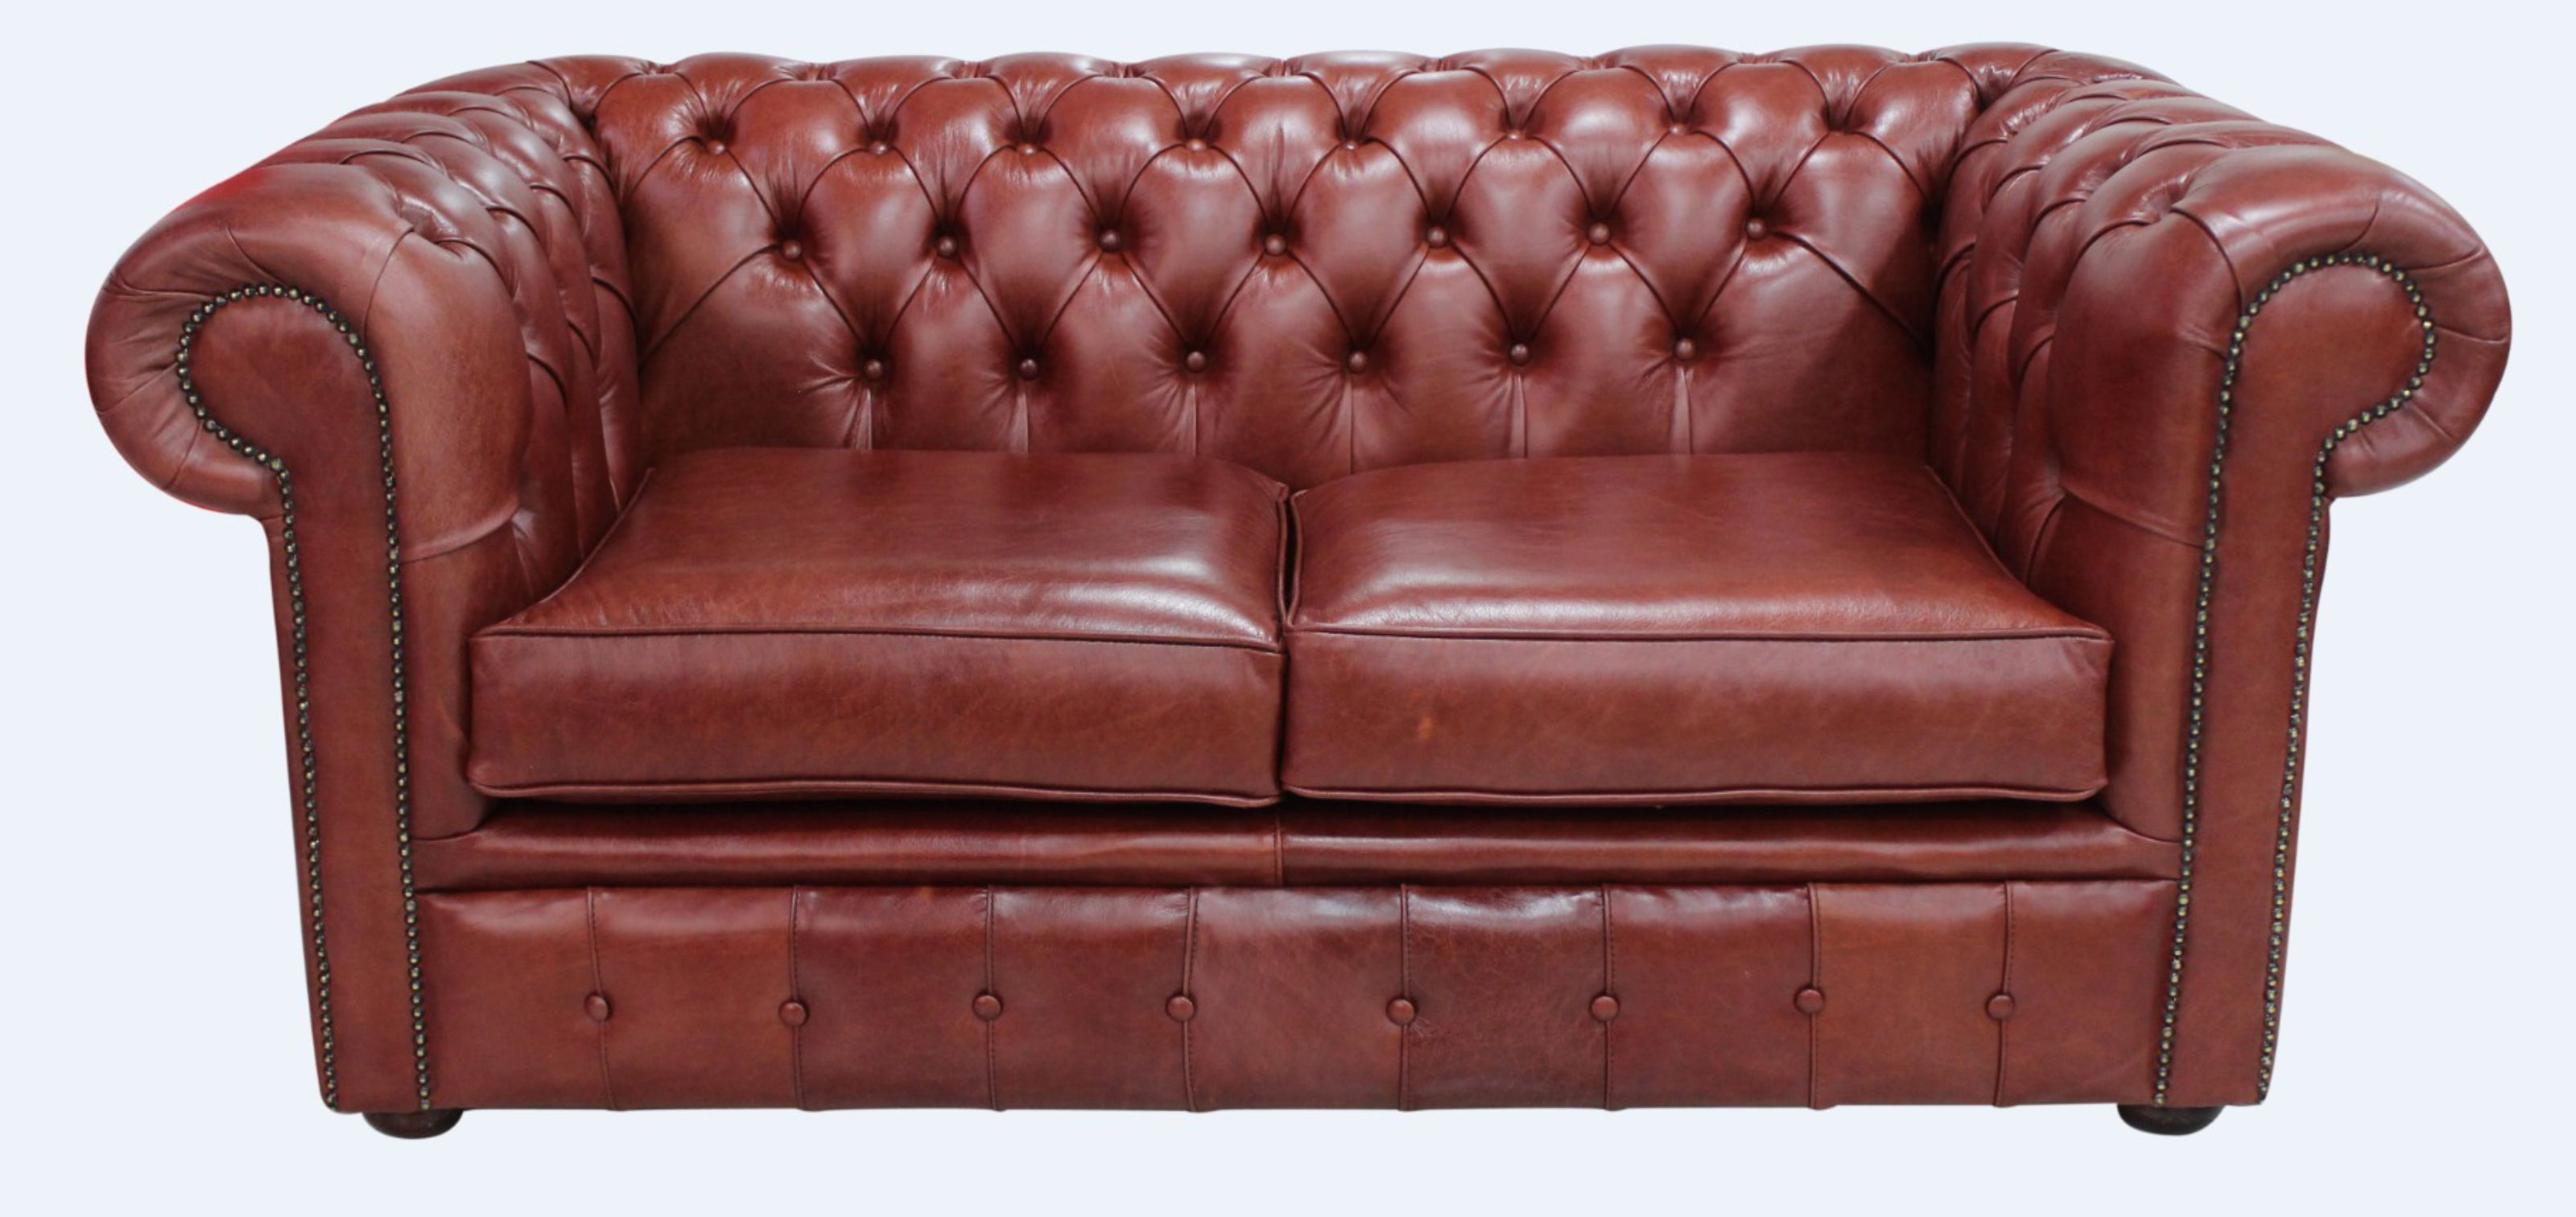 - Chesterfield Original 2 Seater Old English Chestnut Leather Sofa